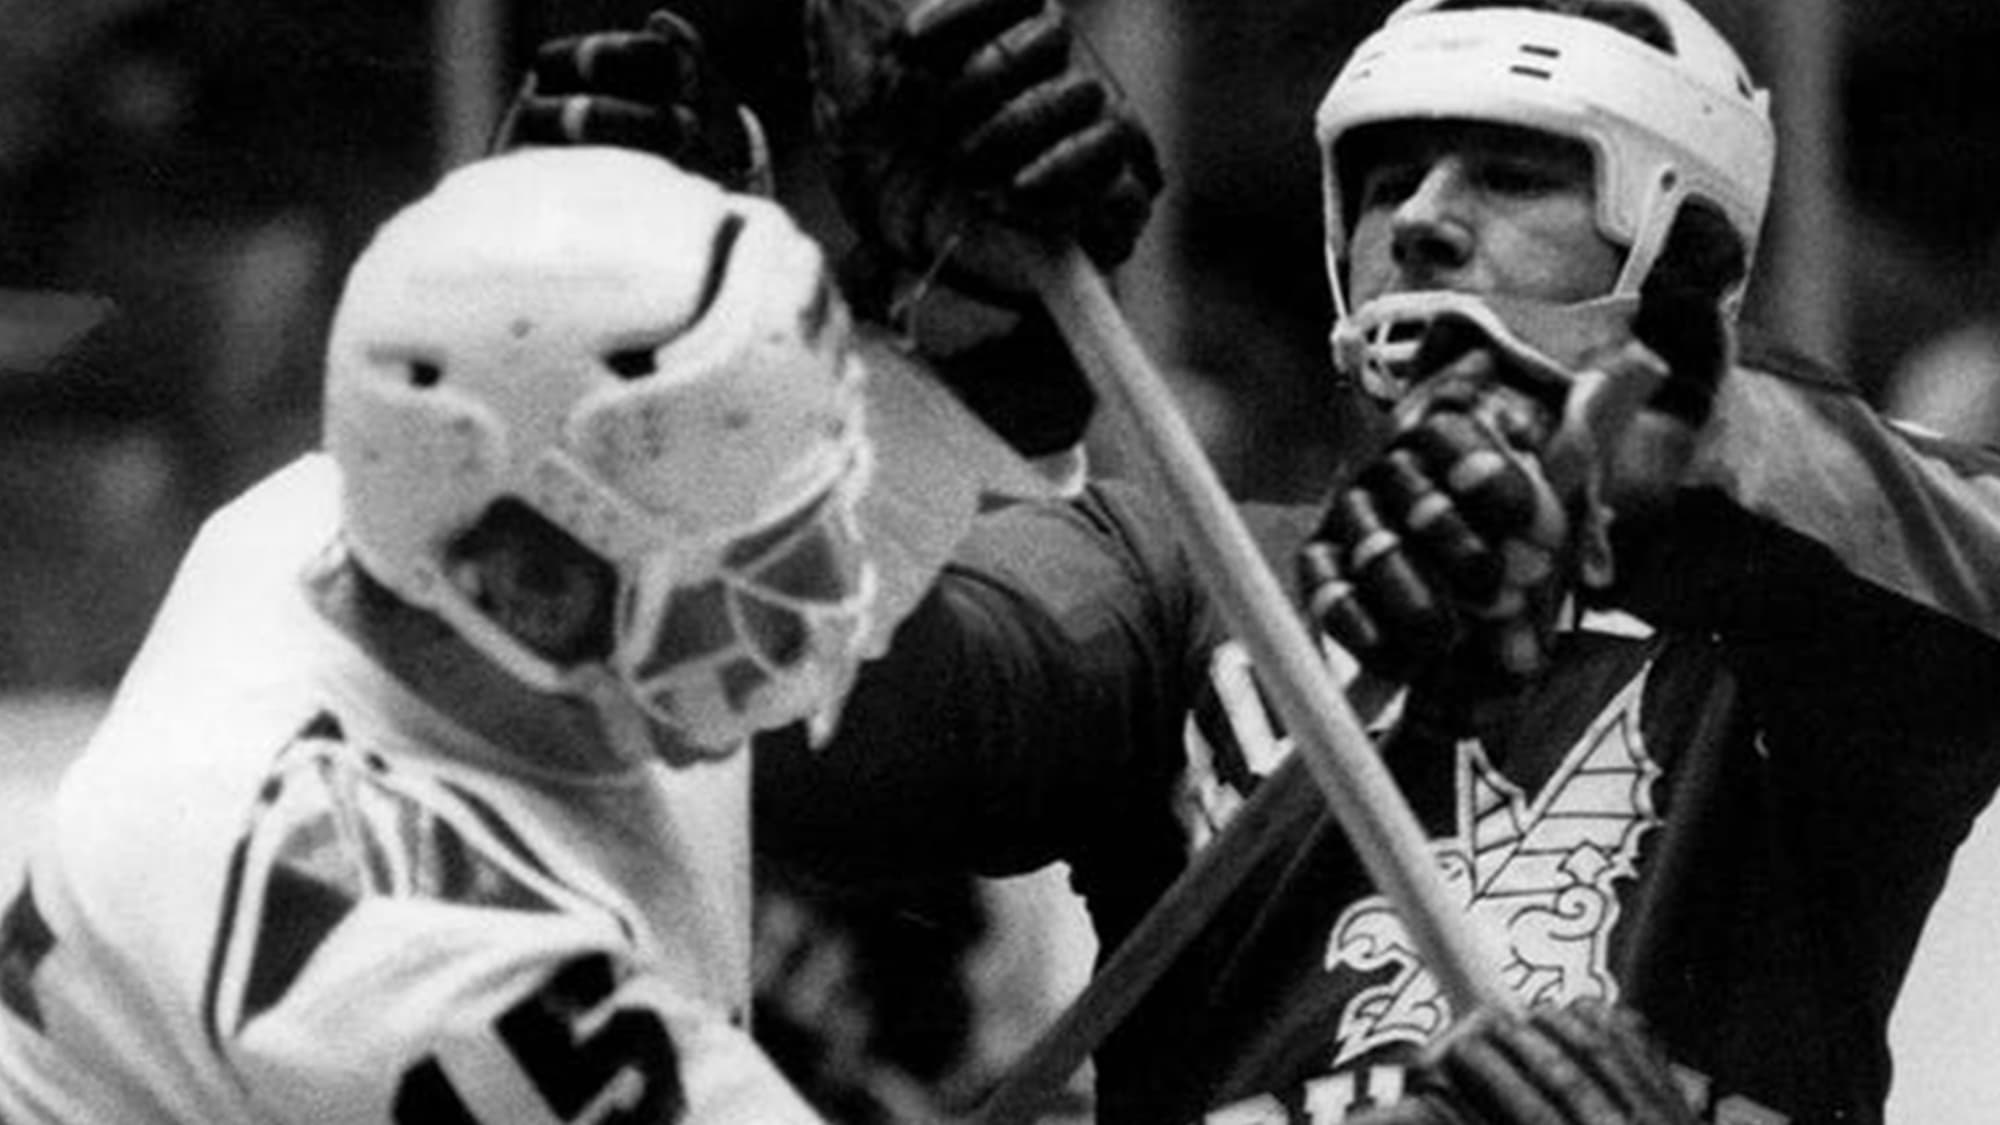 Rochester Griffins - Forgotten Teams of Lacrosse History